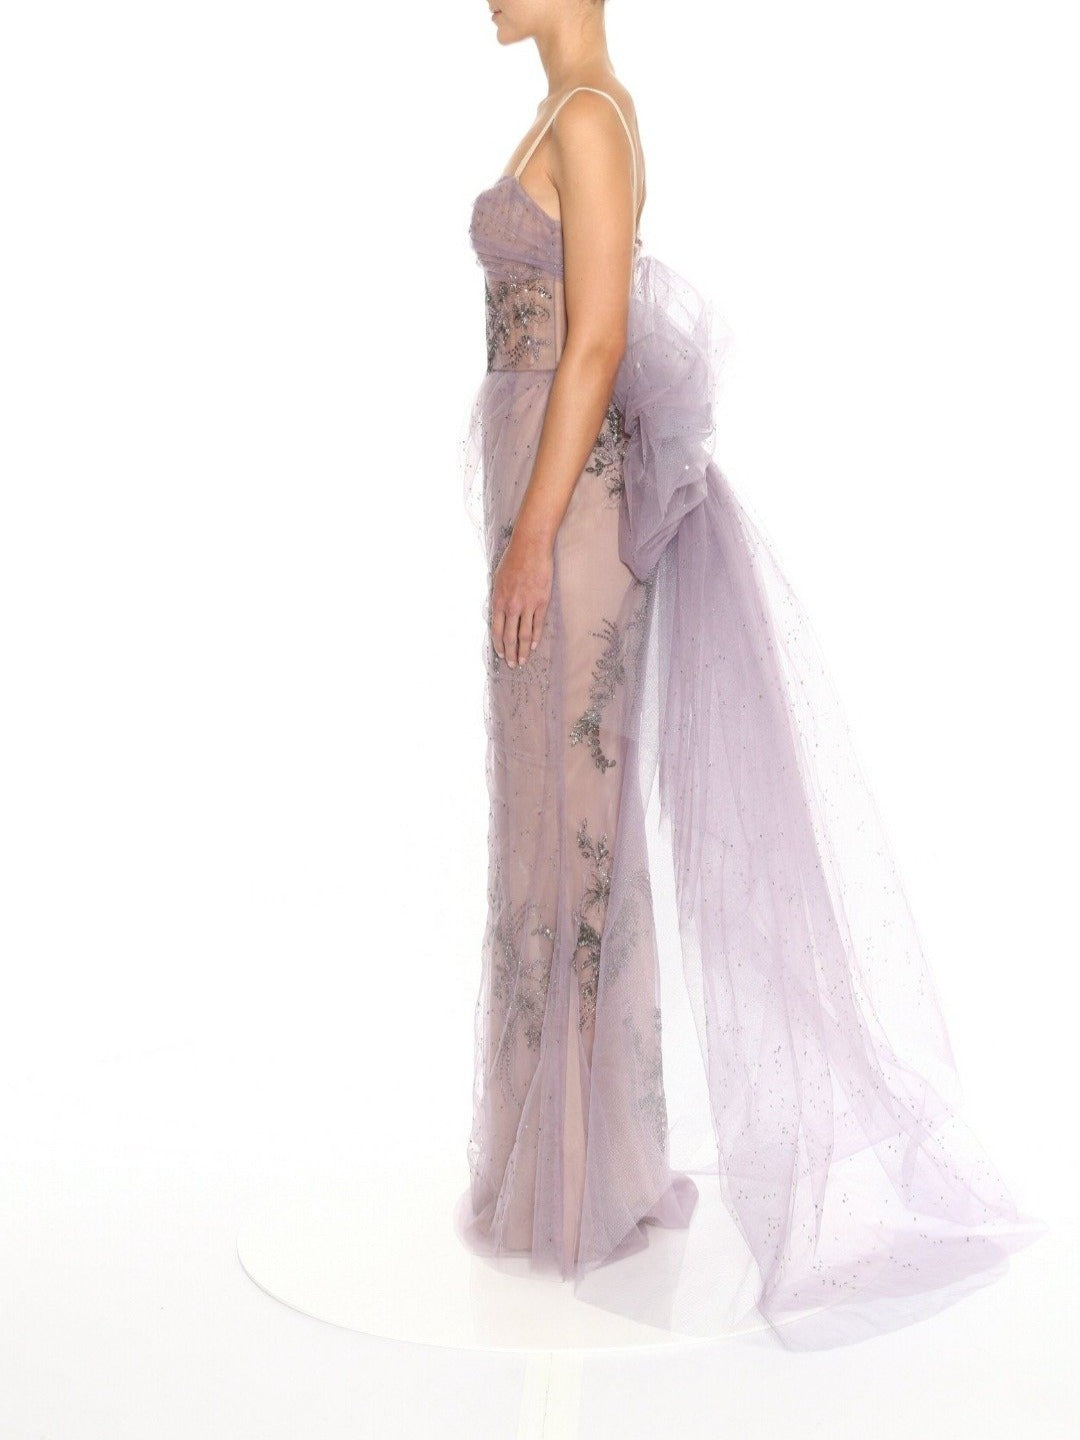 Fully Embroidered Tulle Corseted Gown